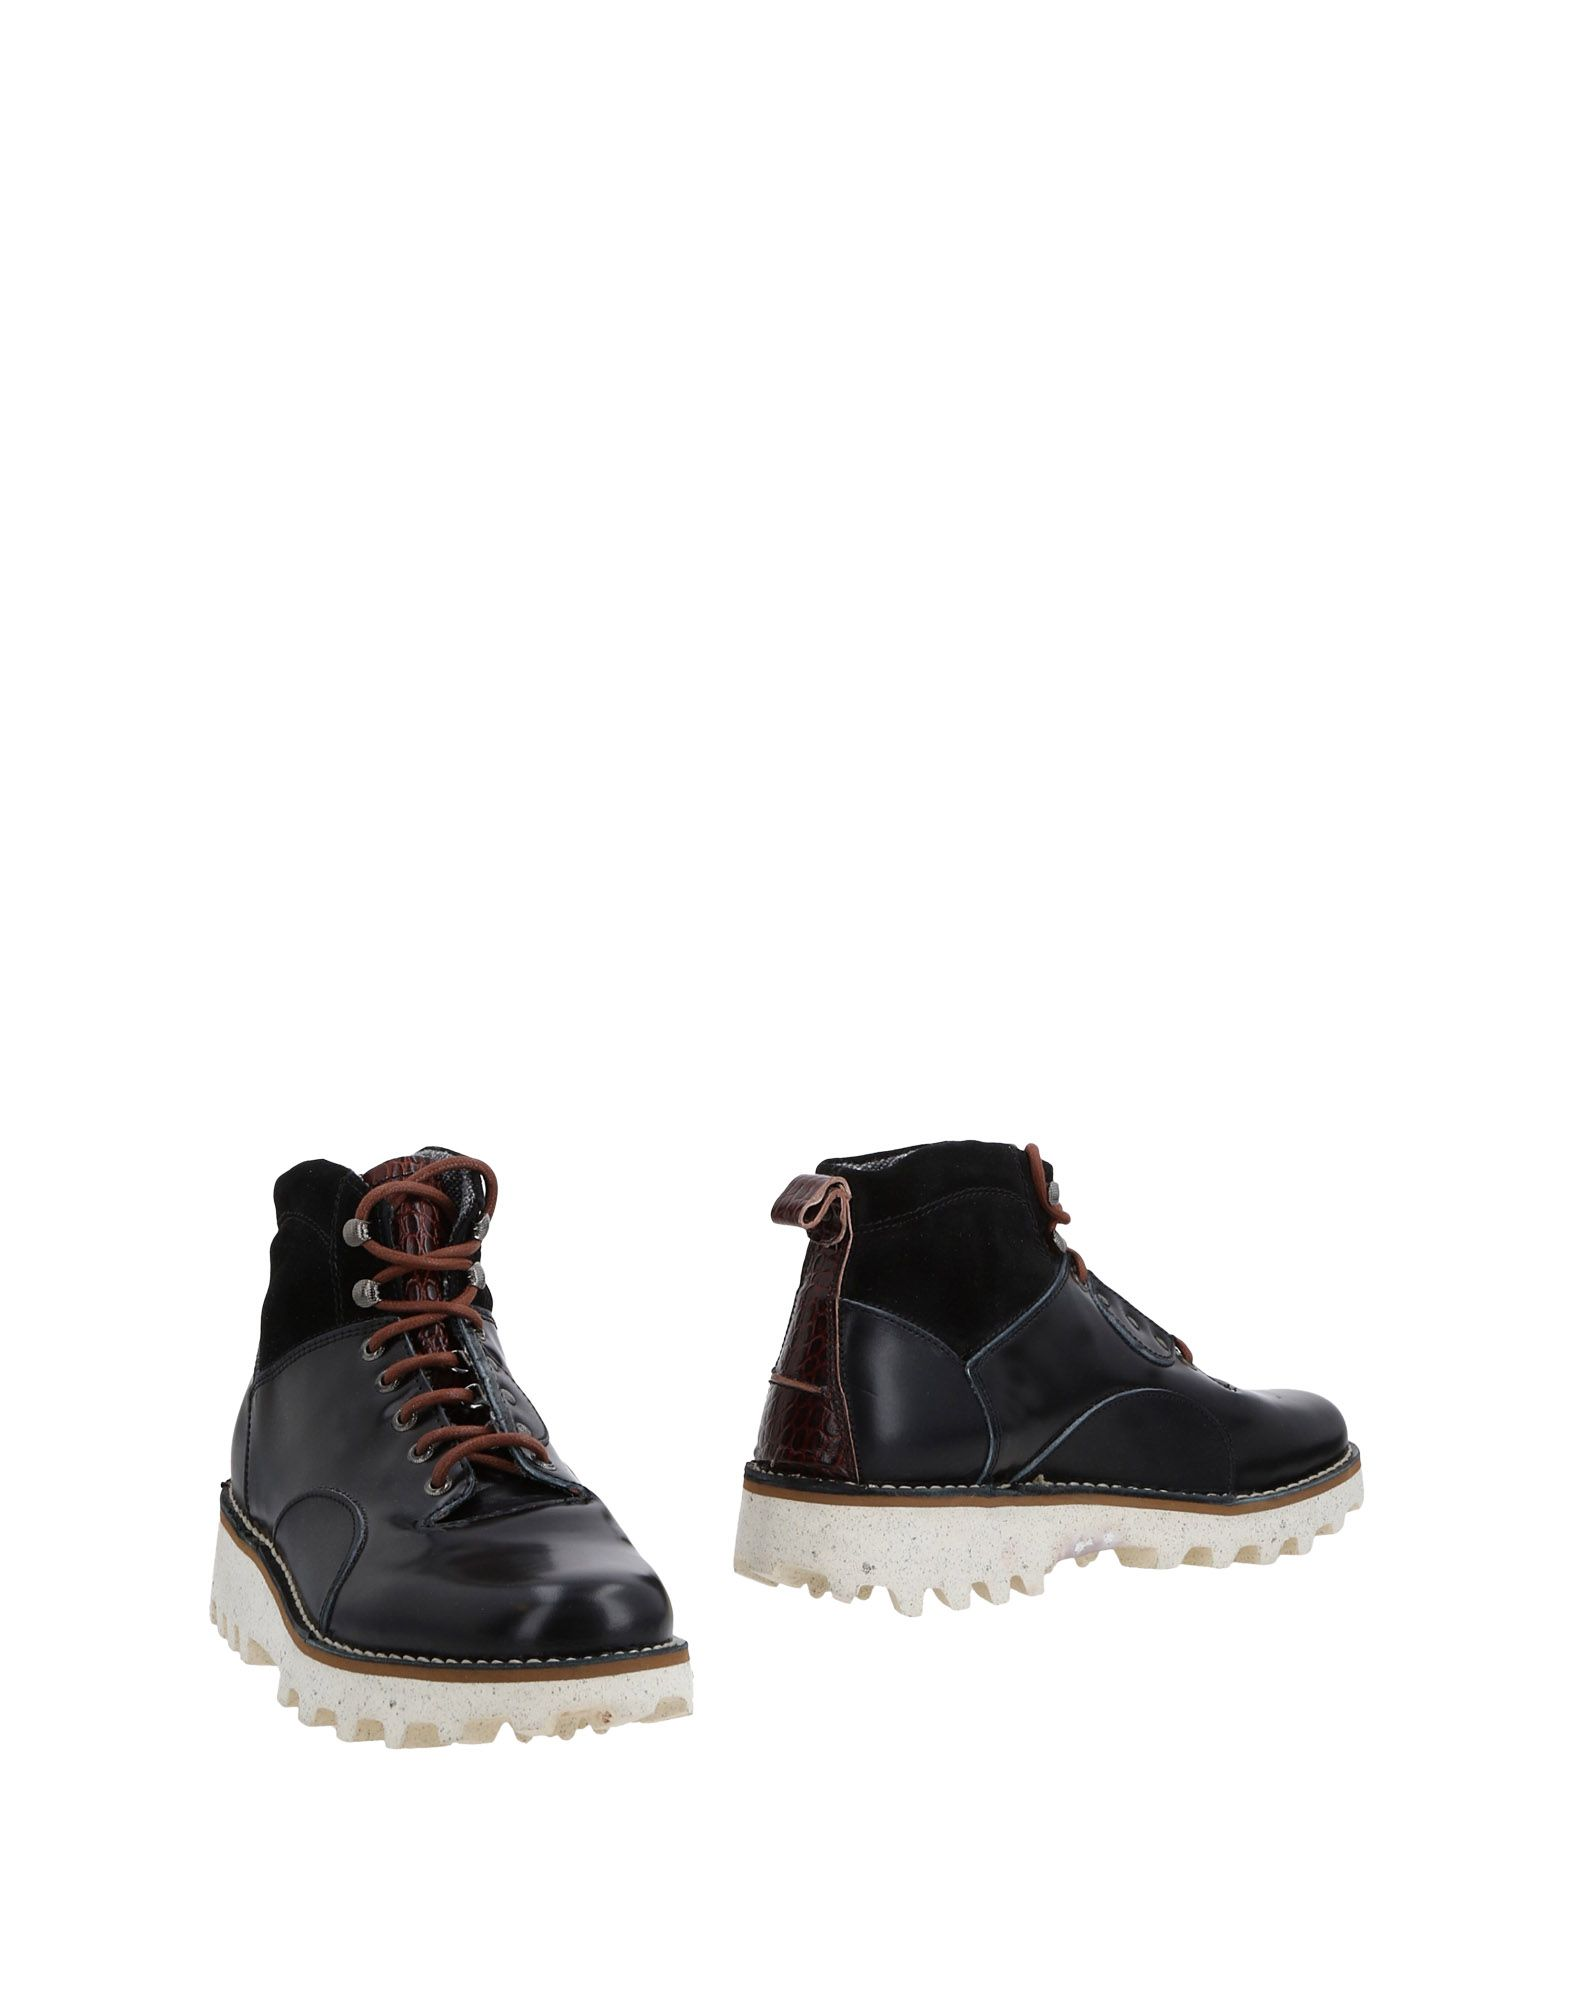 BARLEYCORN Boots in Black